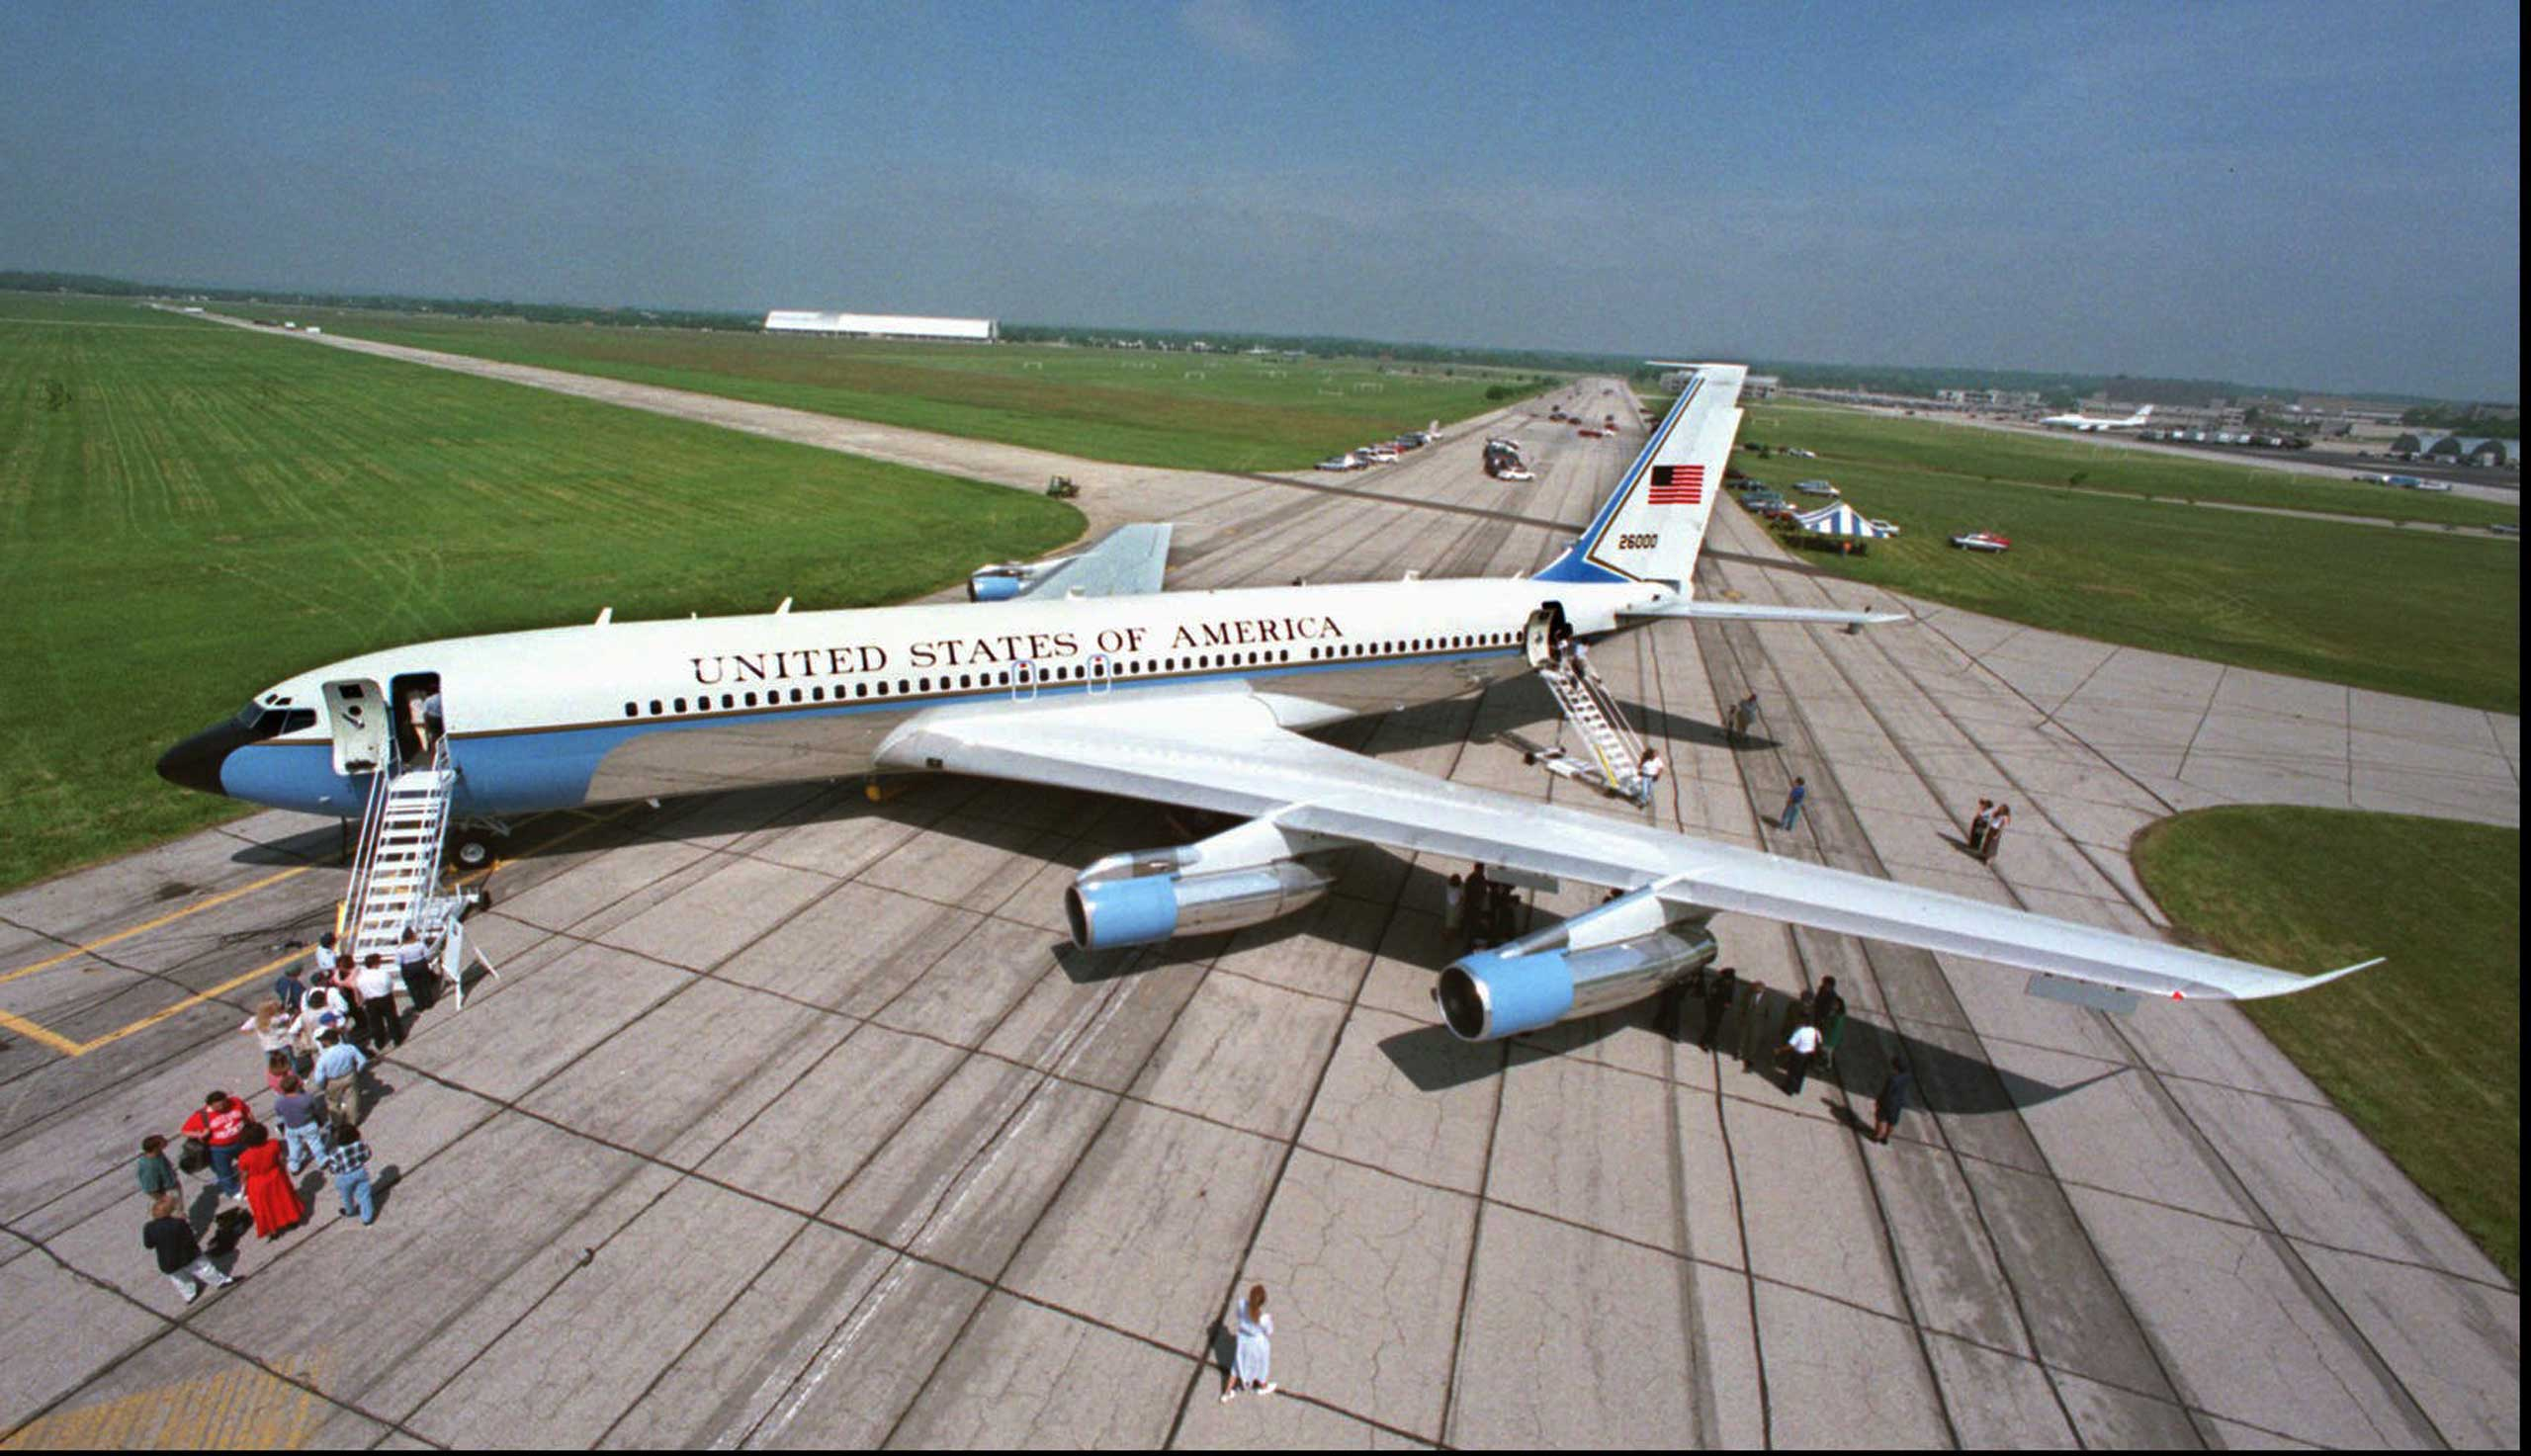 Special Air Mission 26000, a Boeing 707, went into presidential service under the Kennedy administration. SAM 26000 stayed in service through Bill Clinton's administration until 1998.